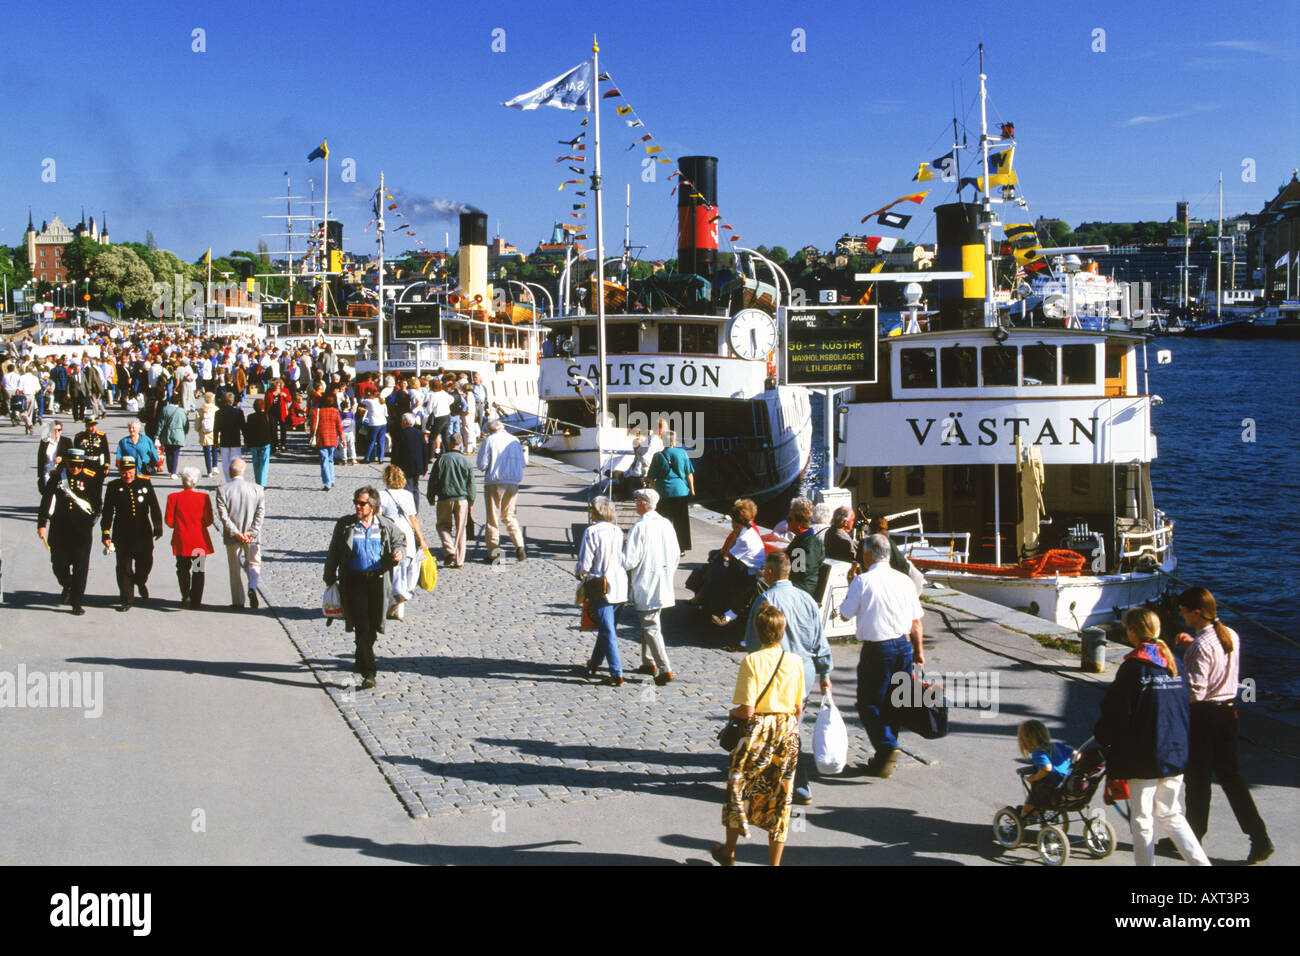 Passengers and steamships at Blasieholmen Island in front of Grand Hotel on Archipelago Boat Day in Stockholm - Stock Image